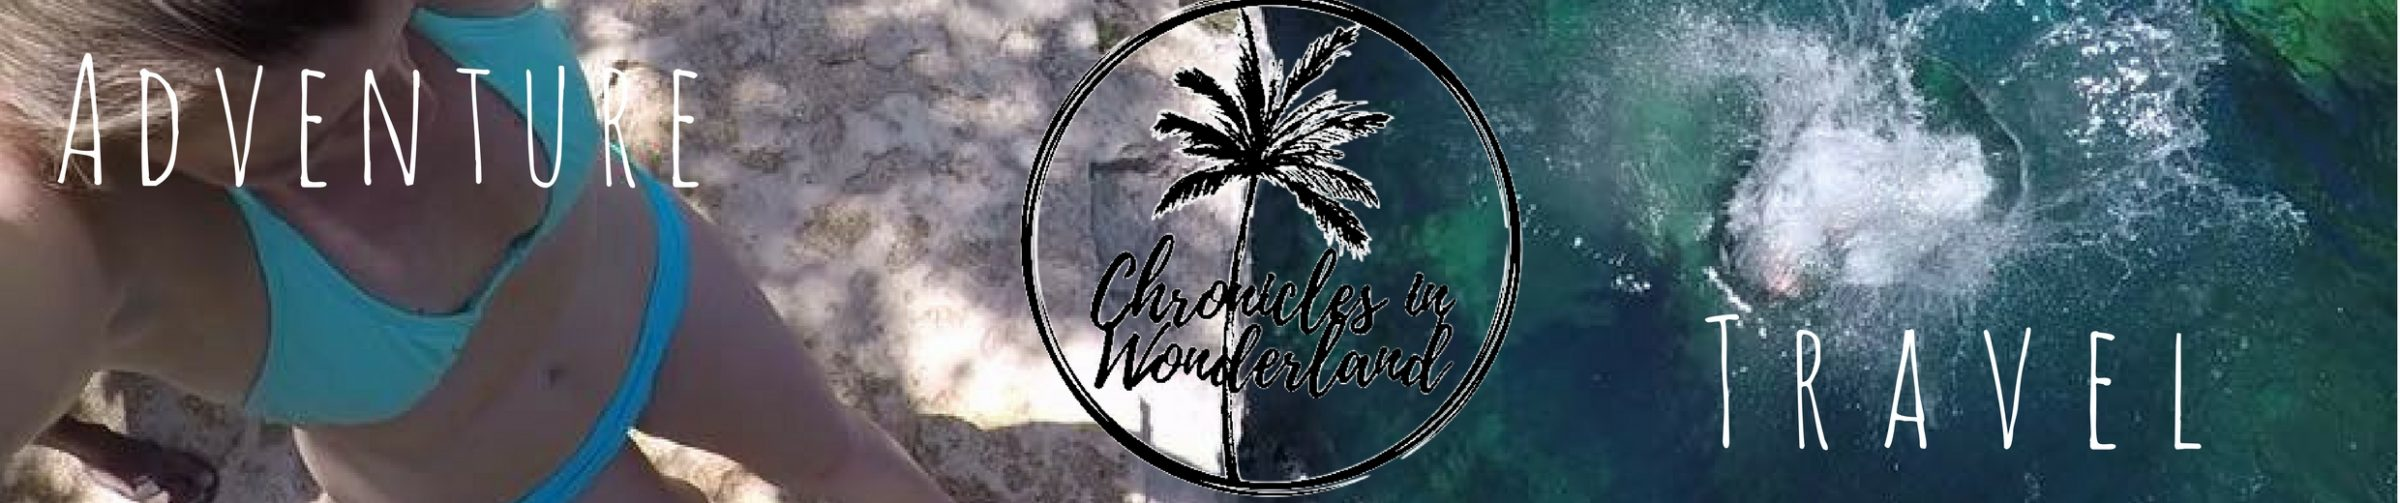 Chronicles In Wonderland